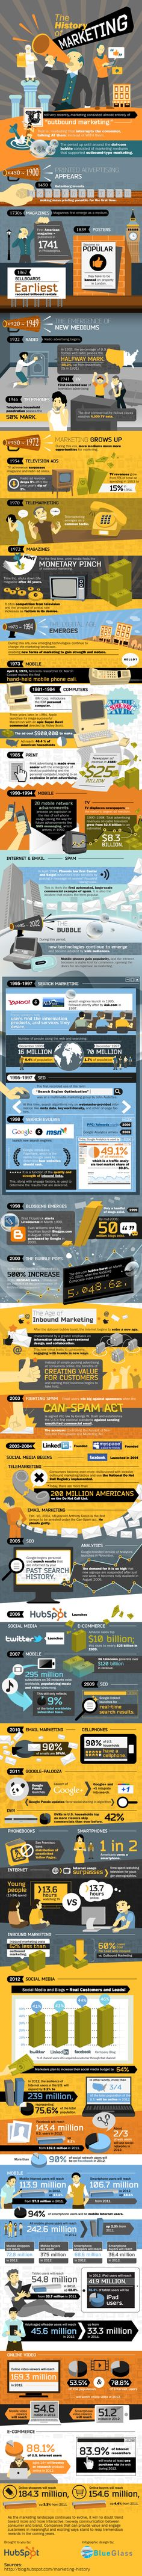 Nice history of internet marketing.